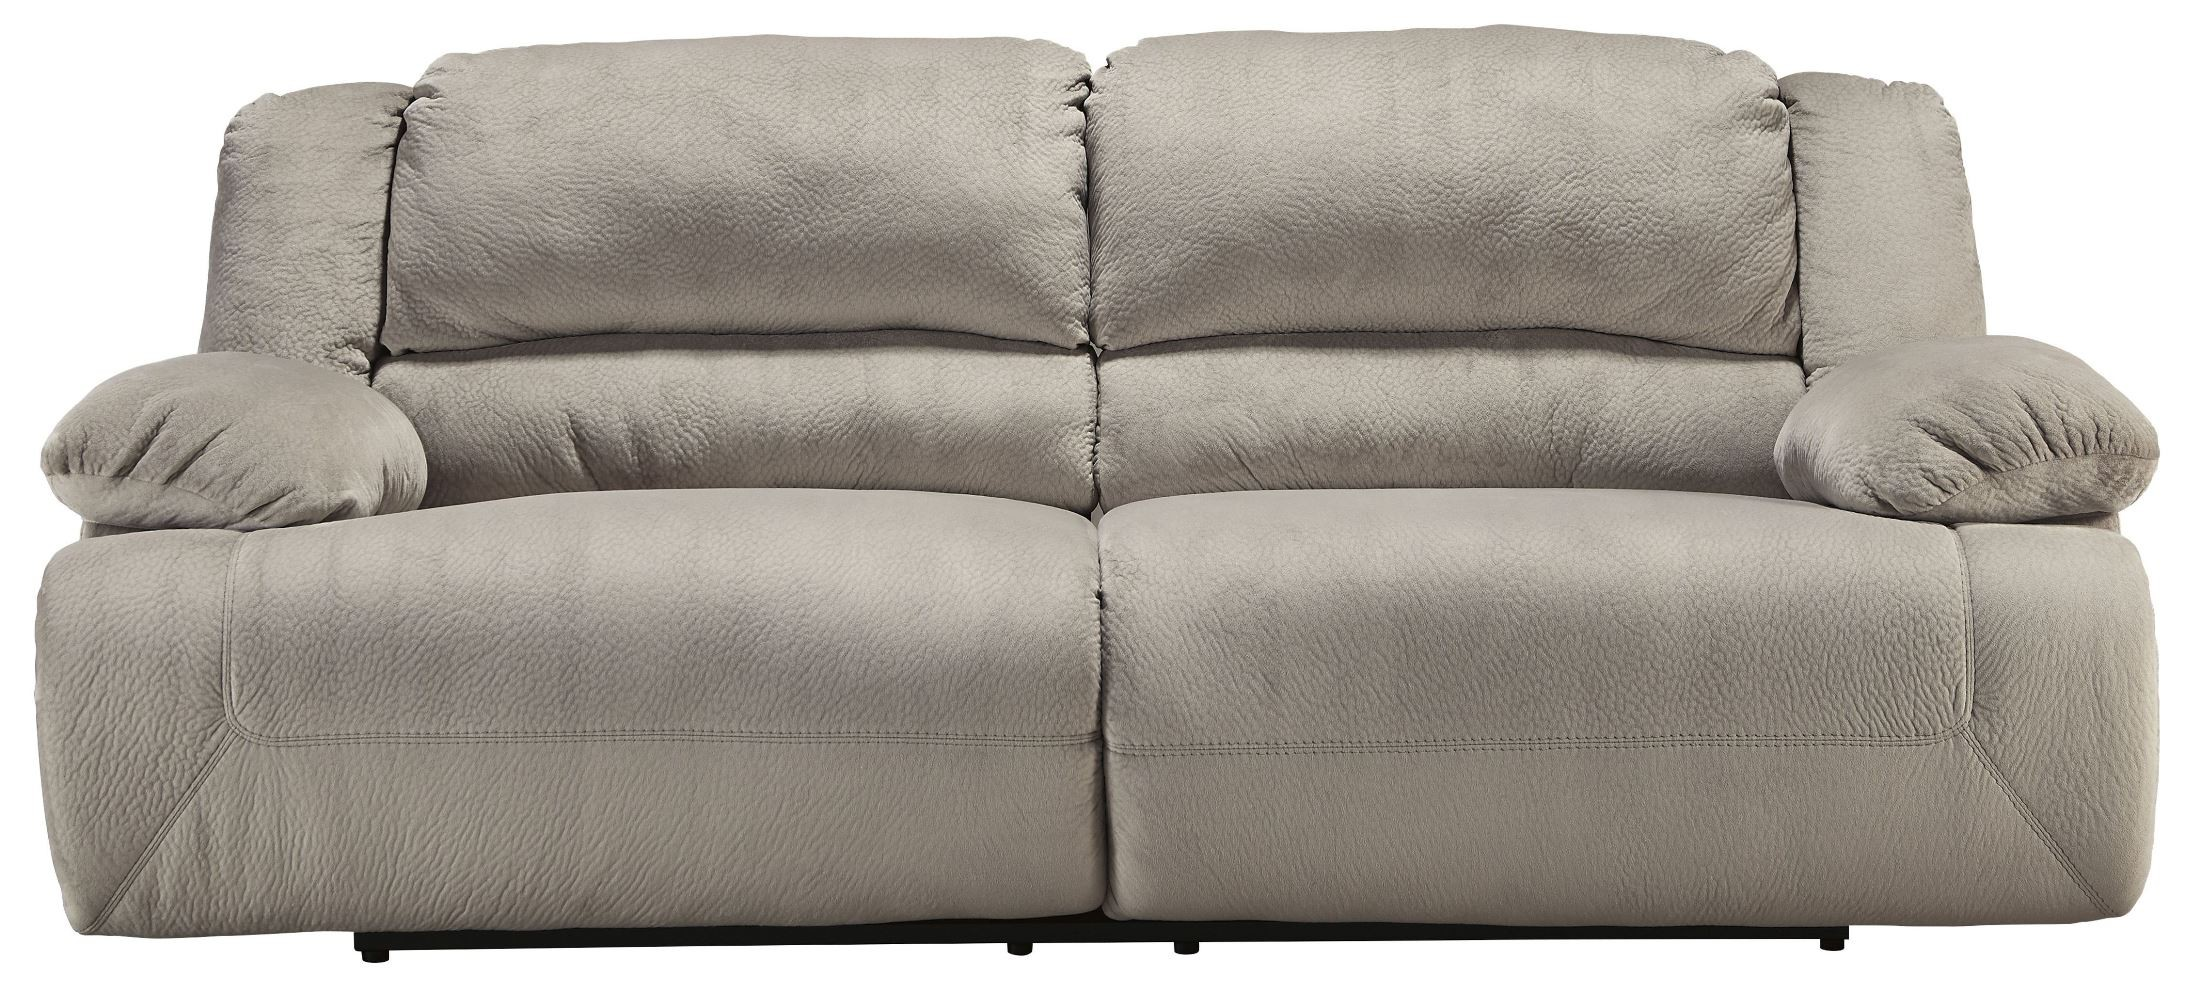 Toletta Granite 2 Seat Reclining Sofa From Ashley 5670381